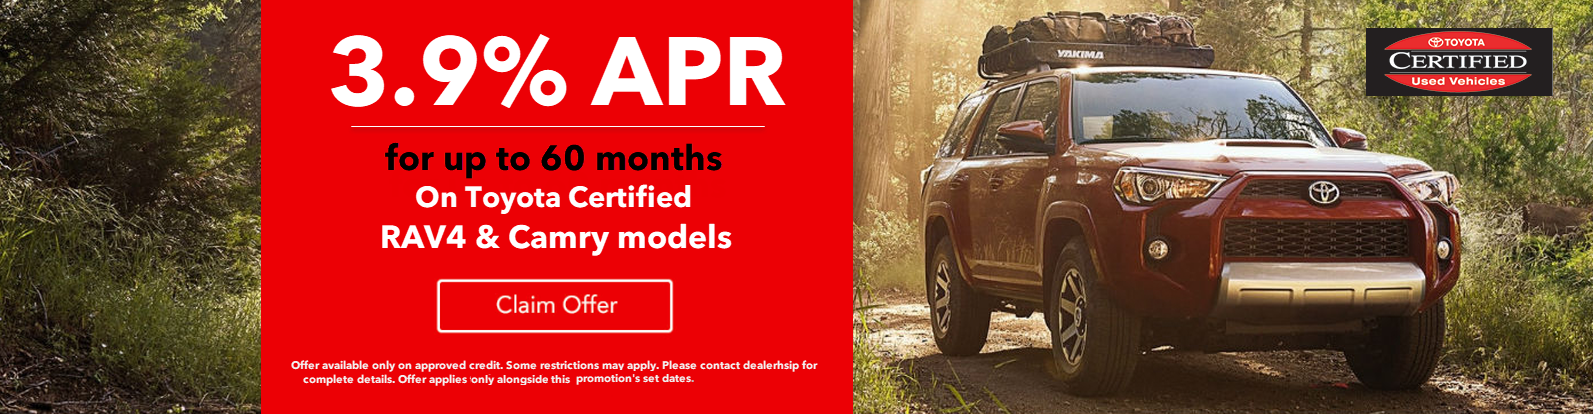 3.9% APR on all Certified Camry and RAV4's